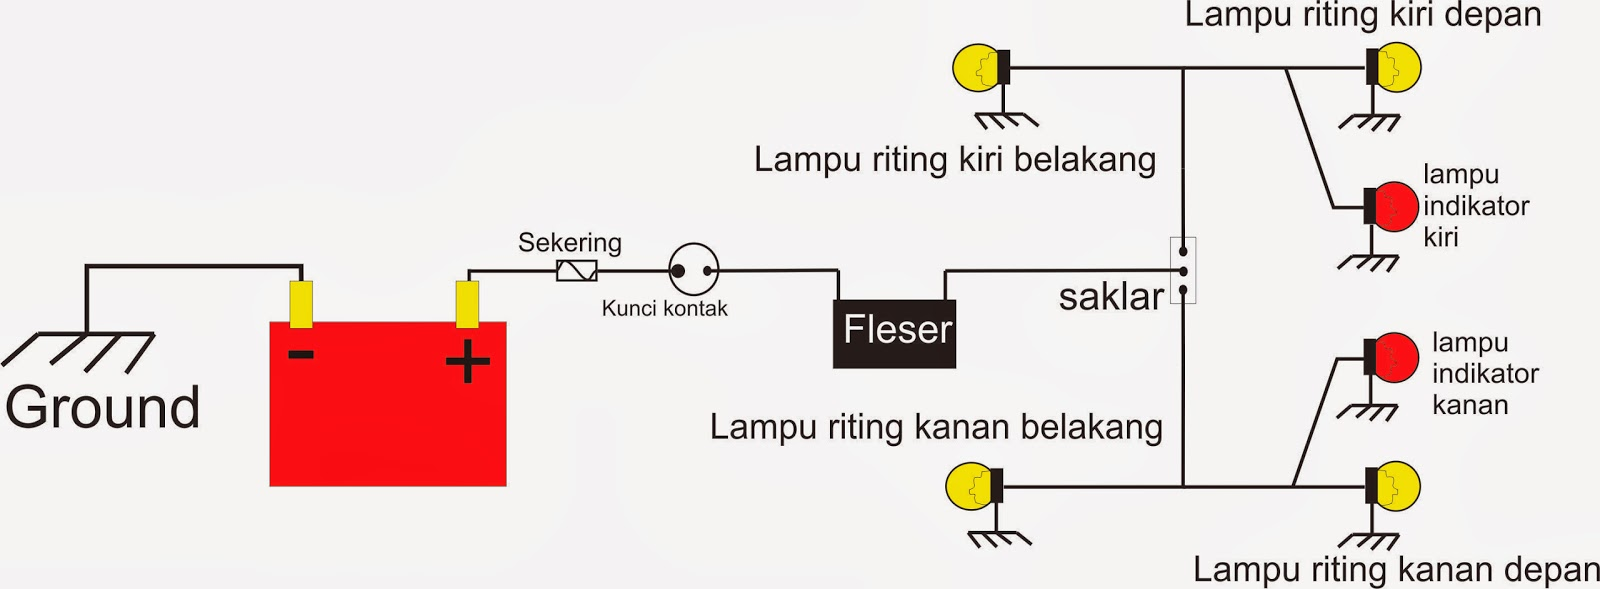 Wiring diagram kelistrikan ac mobil hd antenna wiring diagram wiring diagram head unit avanza love wiring diagram ideas sein 5 wiring diagram head unit avanza wiring diagram kelistrikan ac mobil asfbconference2016 Image collections